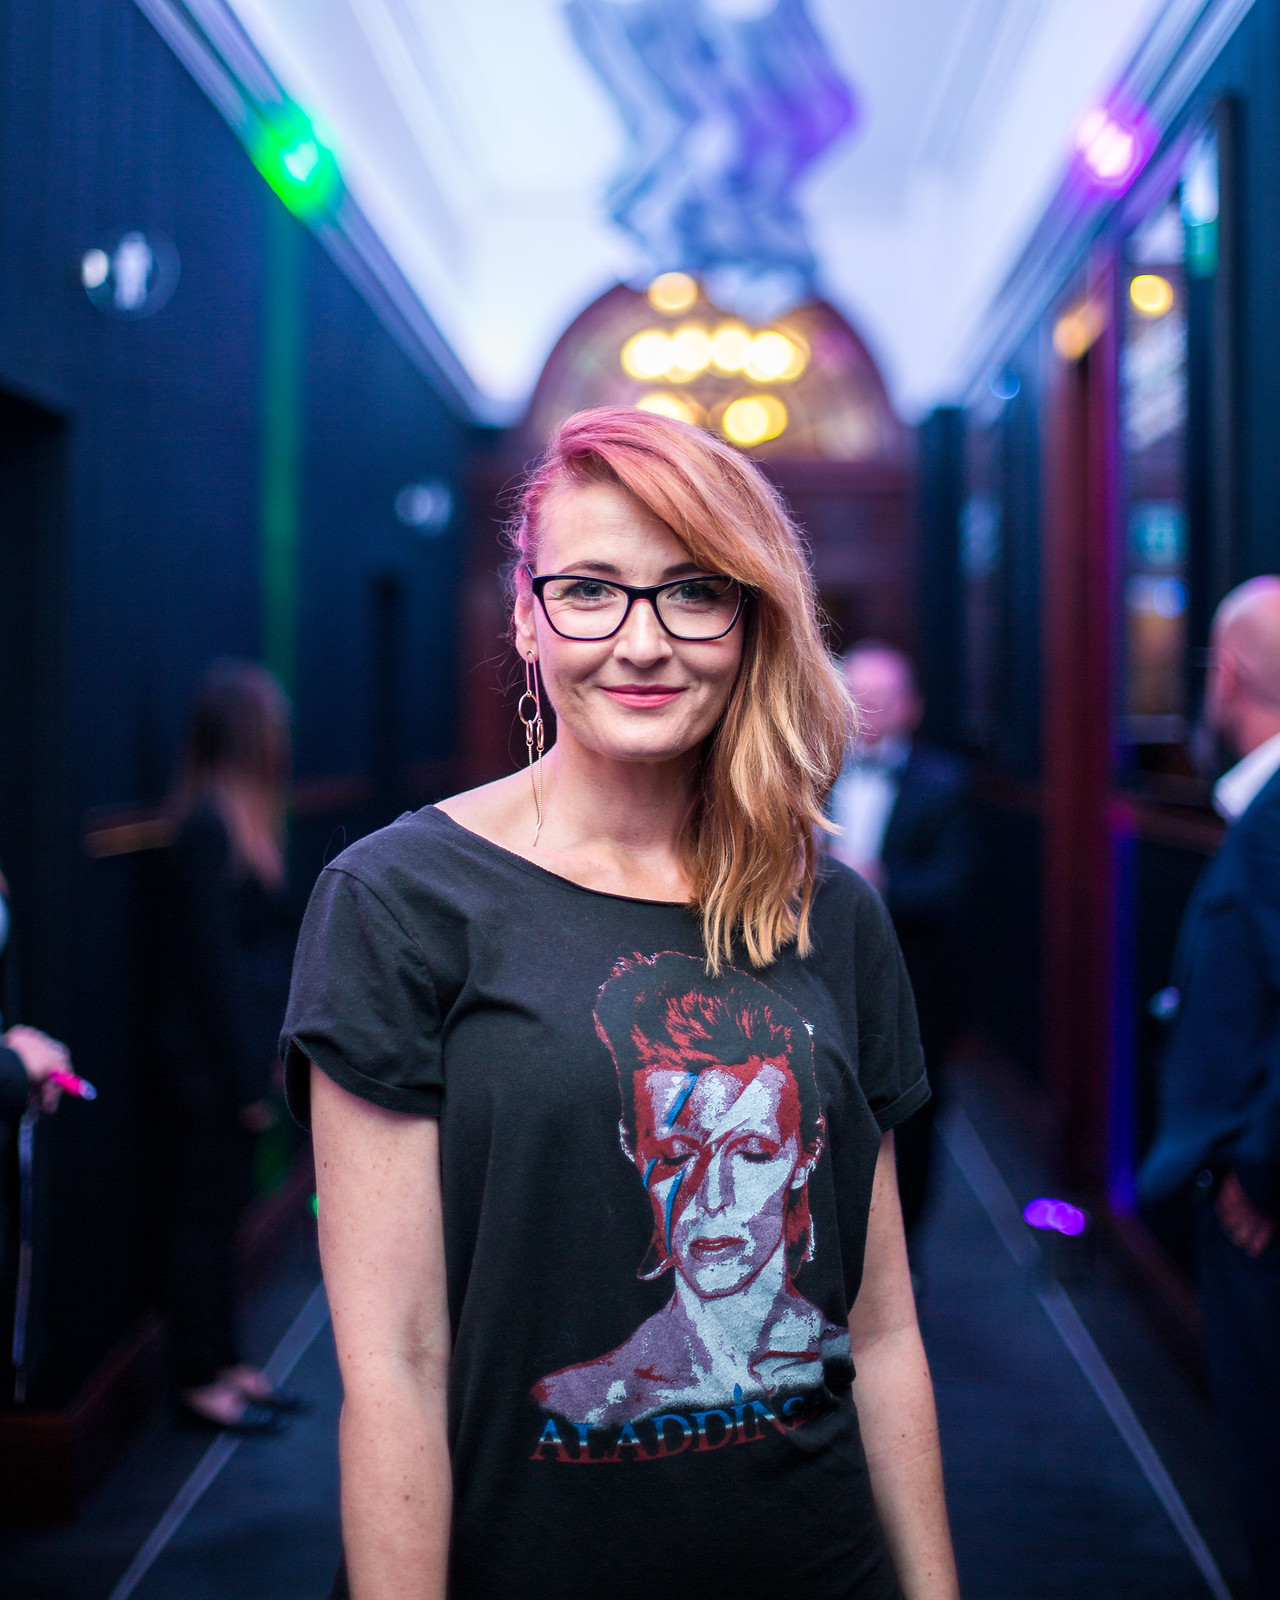 Specsavers SWOTY 2017: Evening/cocktail date night outfit - David Bowie rock t-shirt tee black sequin trousers bright orange pointed heels | Not Dressed As Lamb, over 40 style (photo by Luke Jackson-Clark)